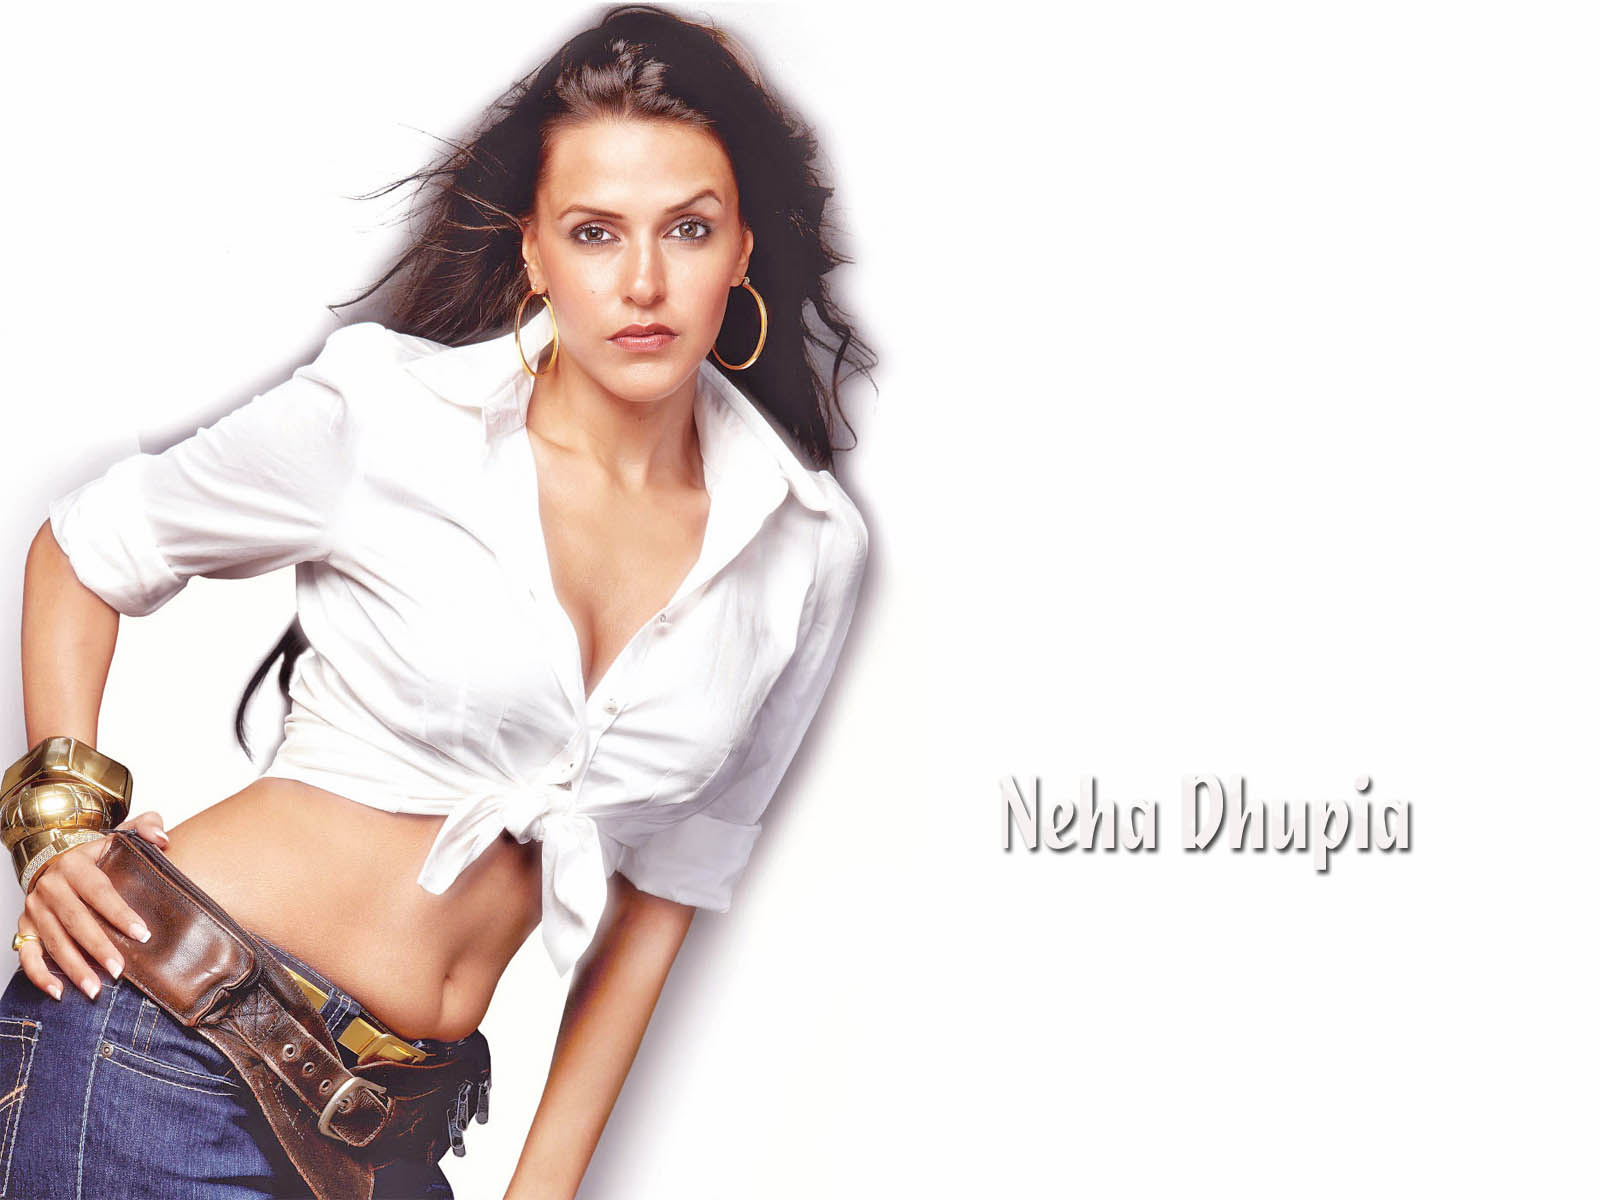 Sexy Pictures Of Neha Dhupia